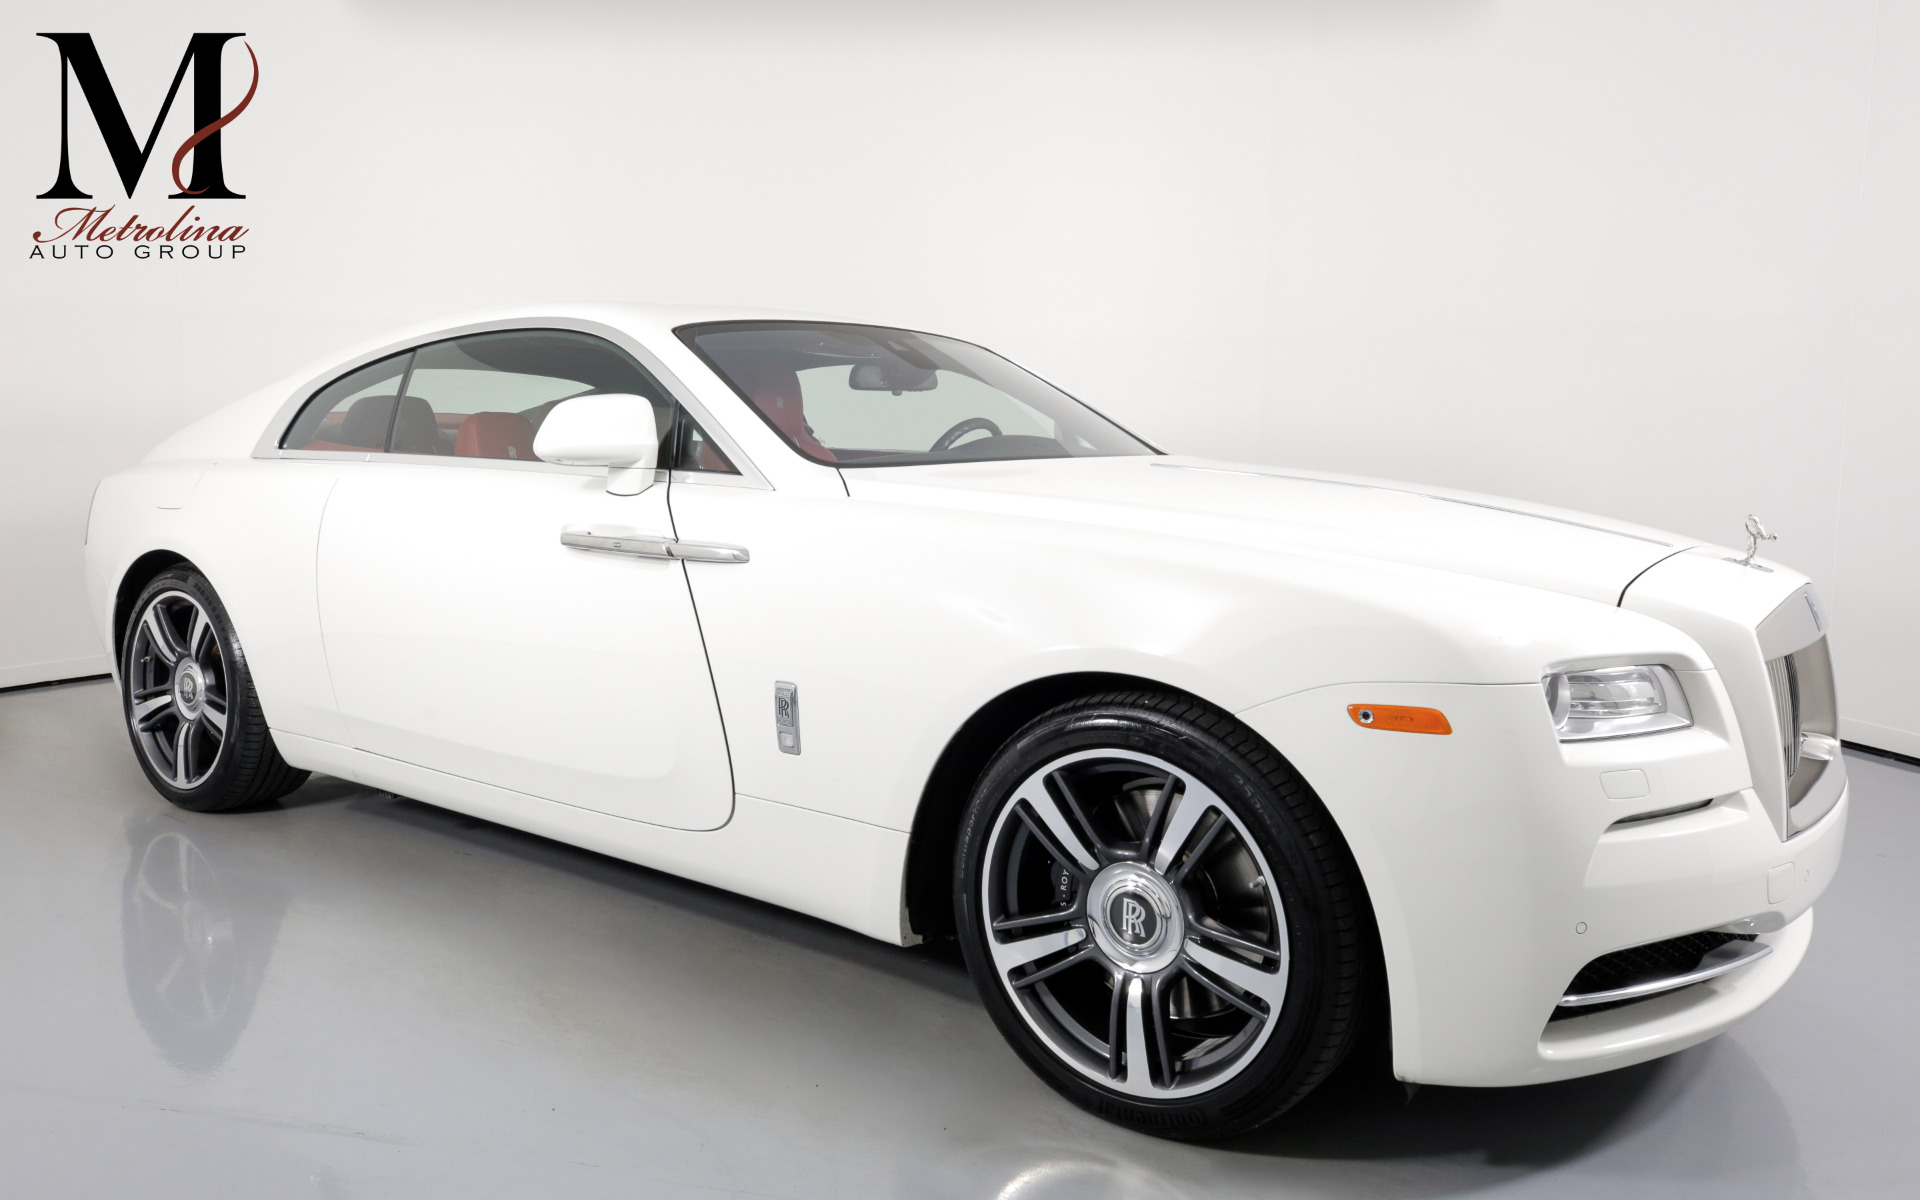 Used 2016 Rolls-Royce Wraith for sale $179,996 at Metrolina Auto Group in Charlotte NC 28217 - 1